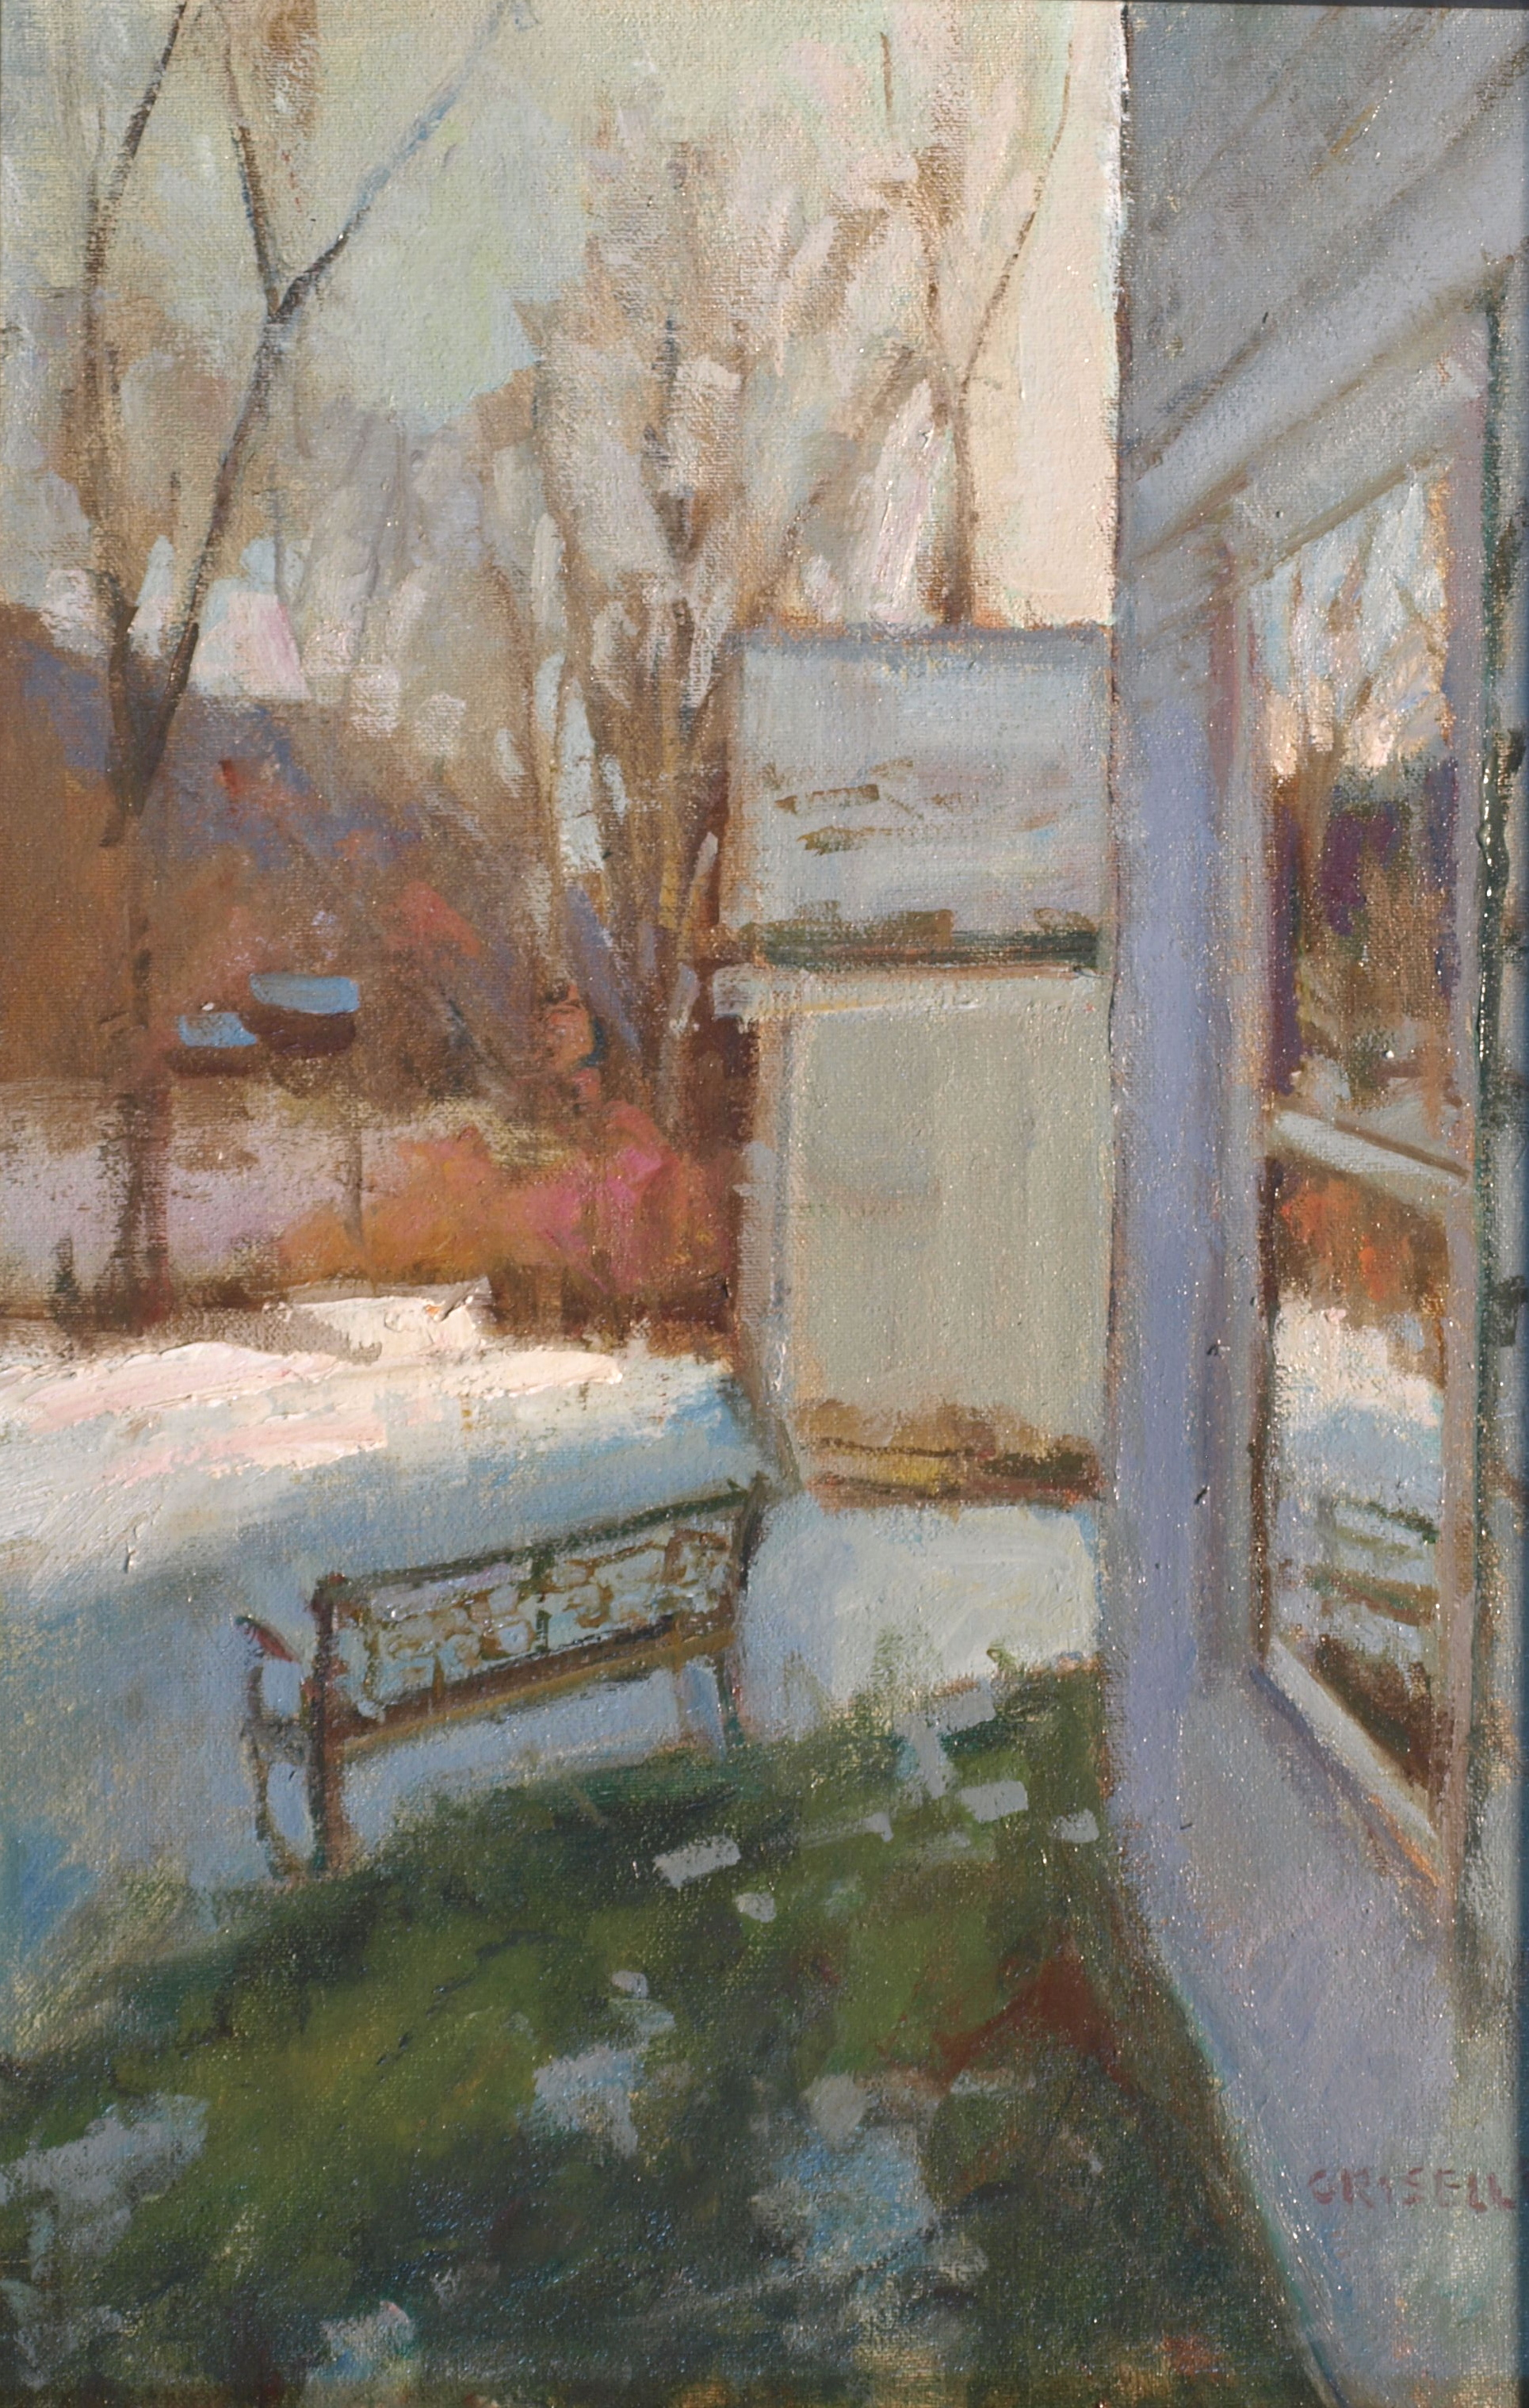 Reflections, Oil on Canvas on Panel, 18 x 12 Inches, by Susan Grisell, $325